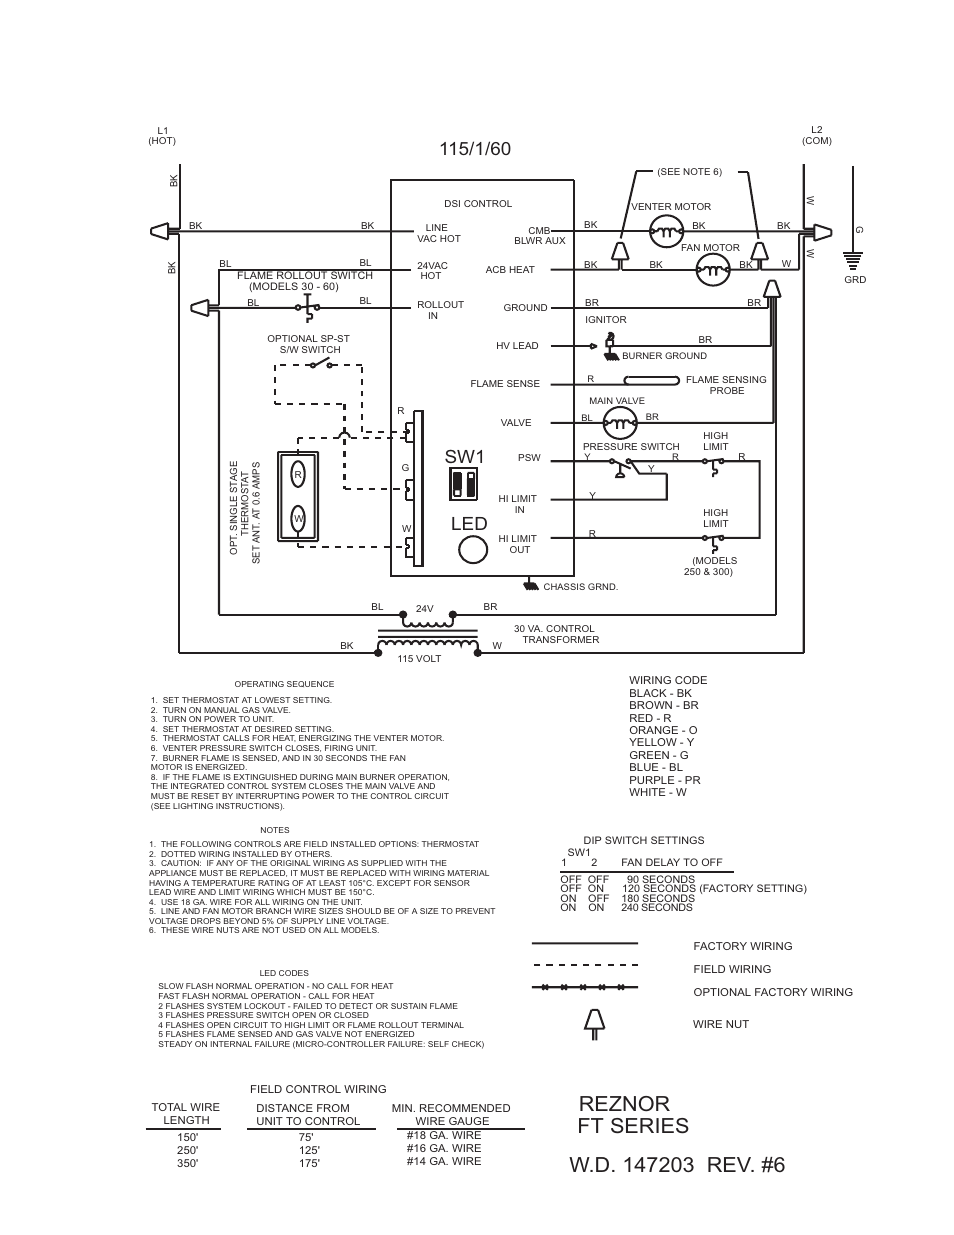 reznor ft unit installation manual page13 reznor unit heater wiring diagram reznor udap wiring diagram at aneh.co